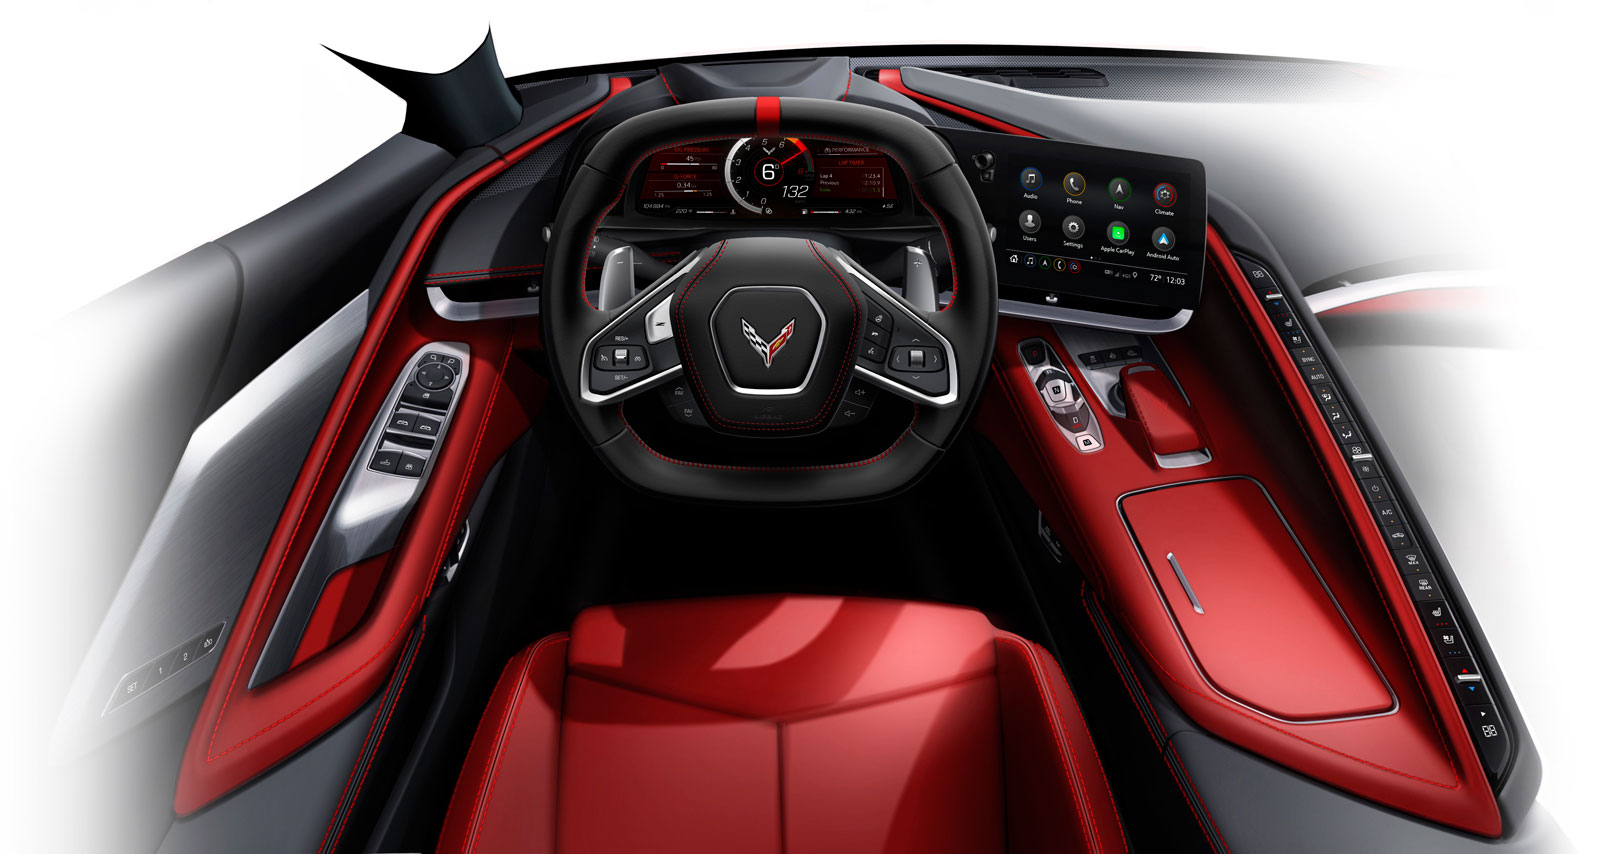 2020 Chevrolet Corvette Stingray Interior Design Sketch Render